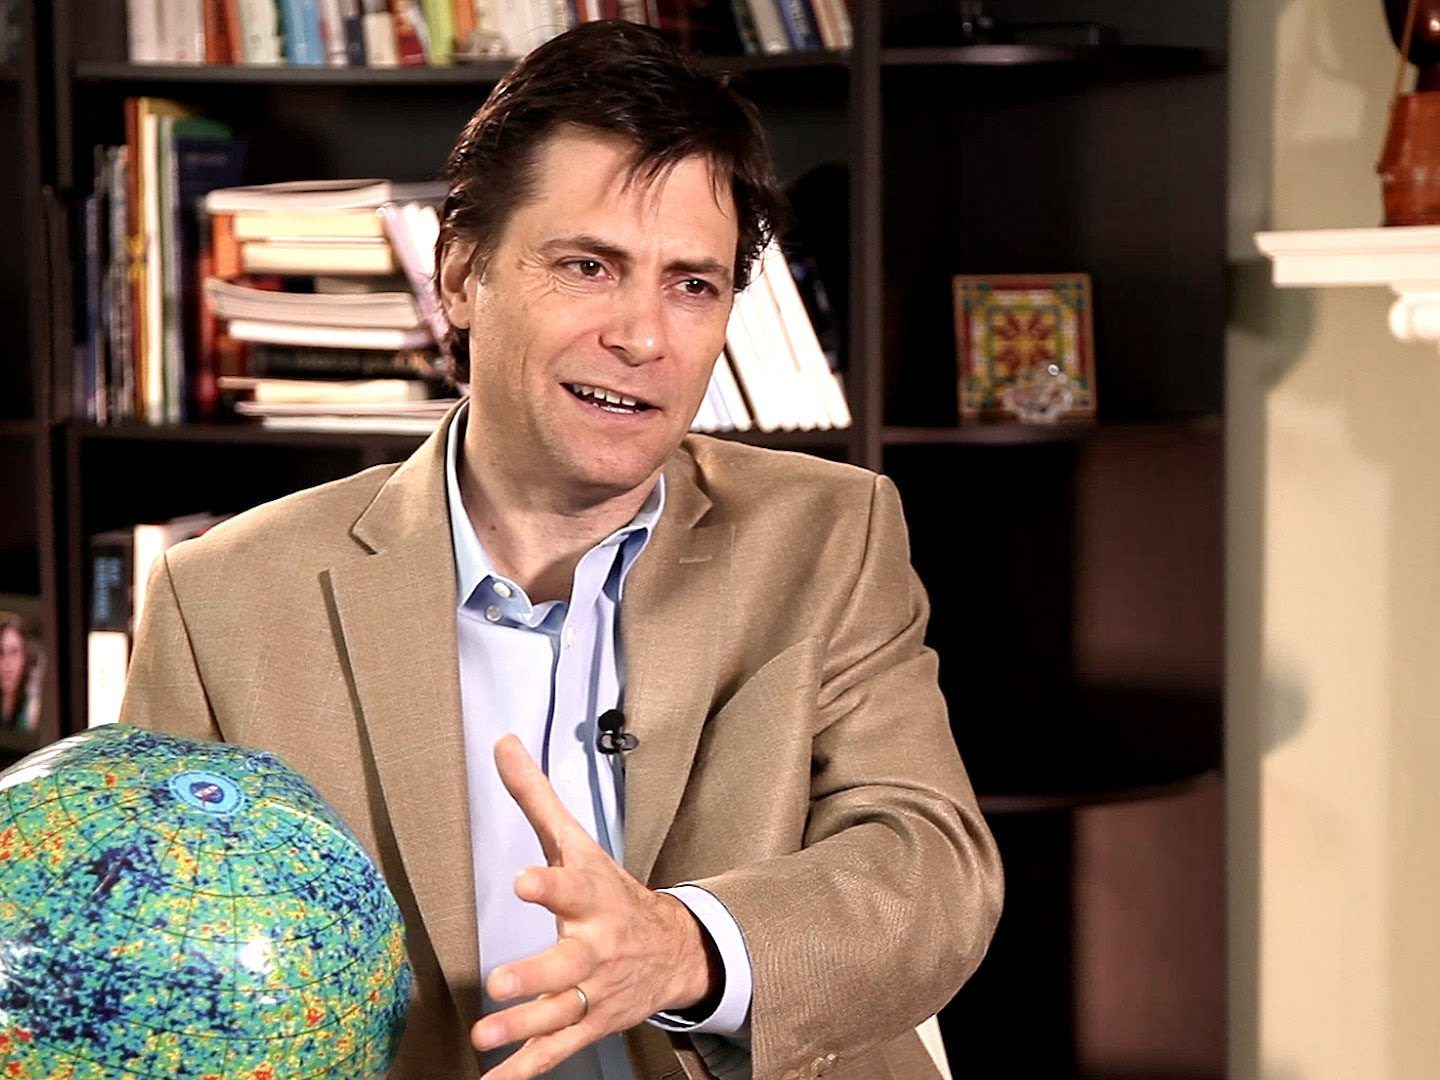 The Philosophy of: Max Tegmark (+ Steven Weinberg and Freeman Dyson) on the meaning of life